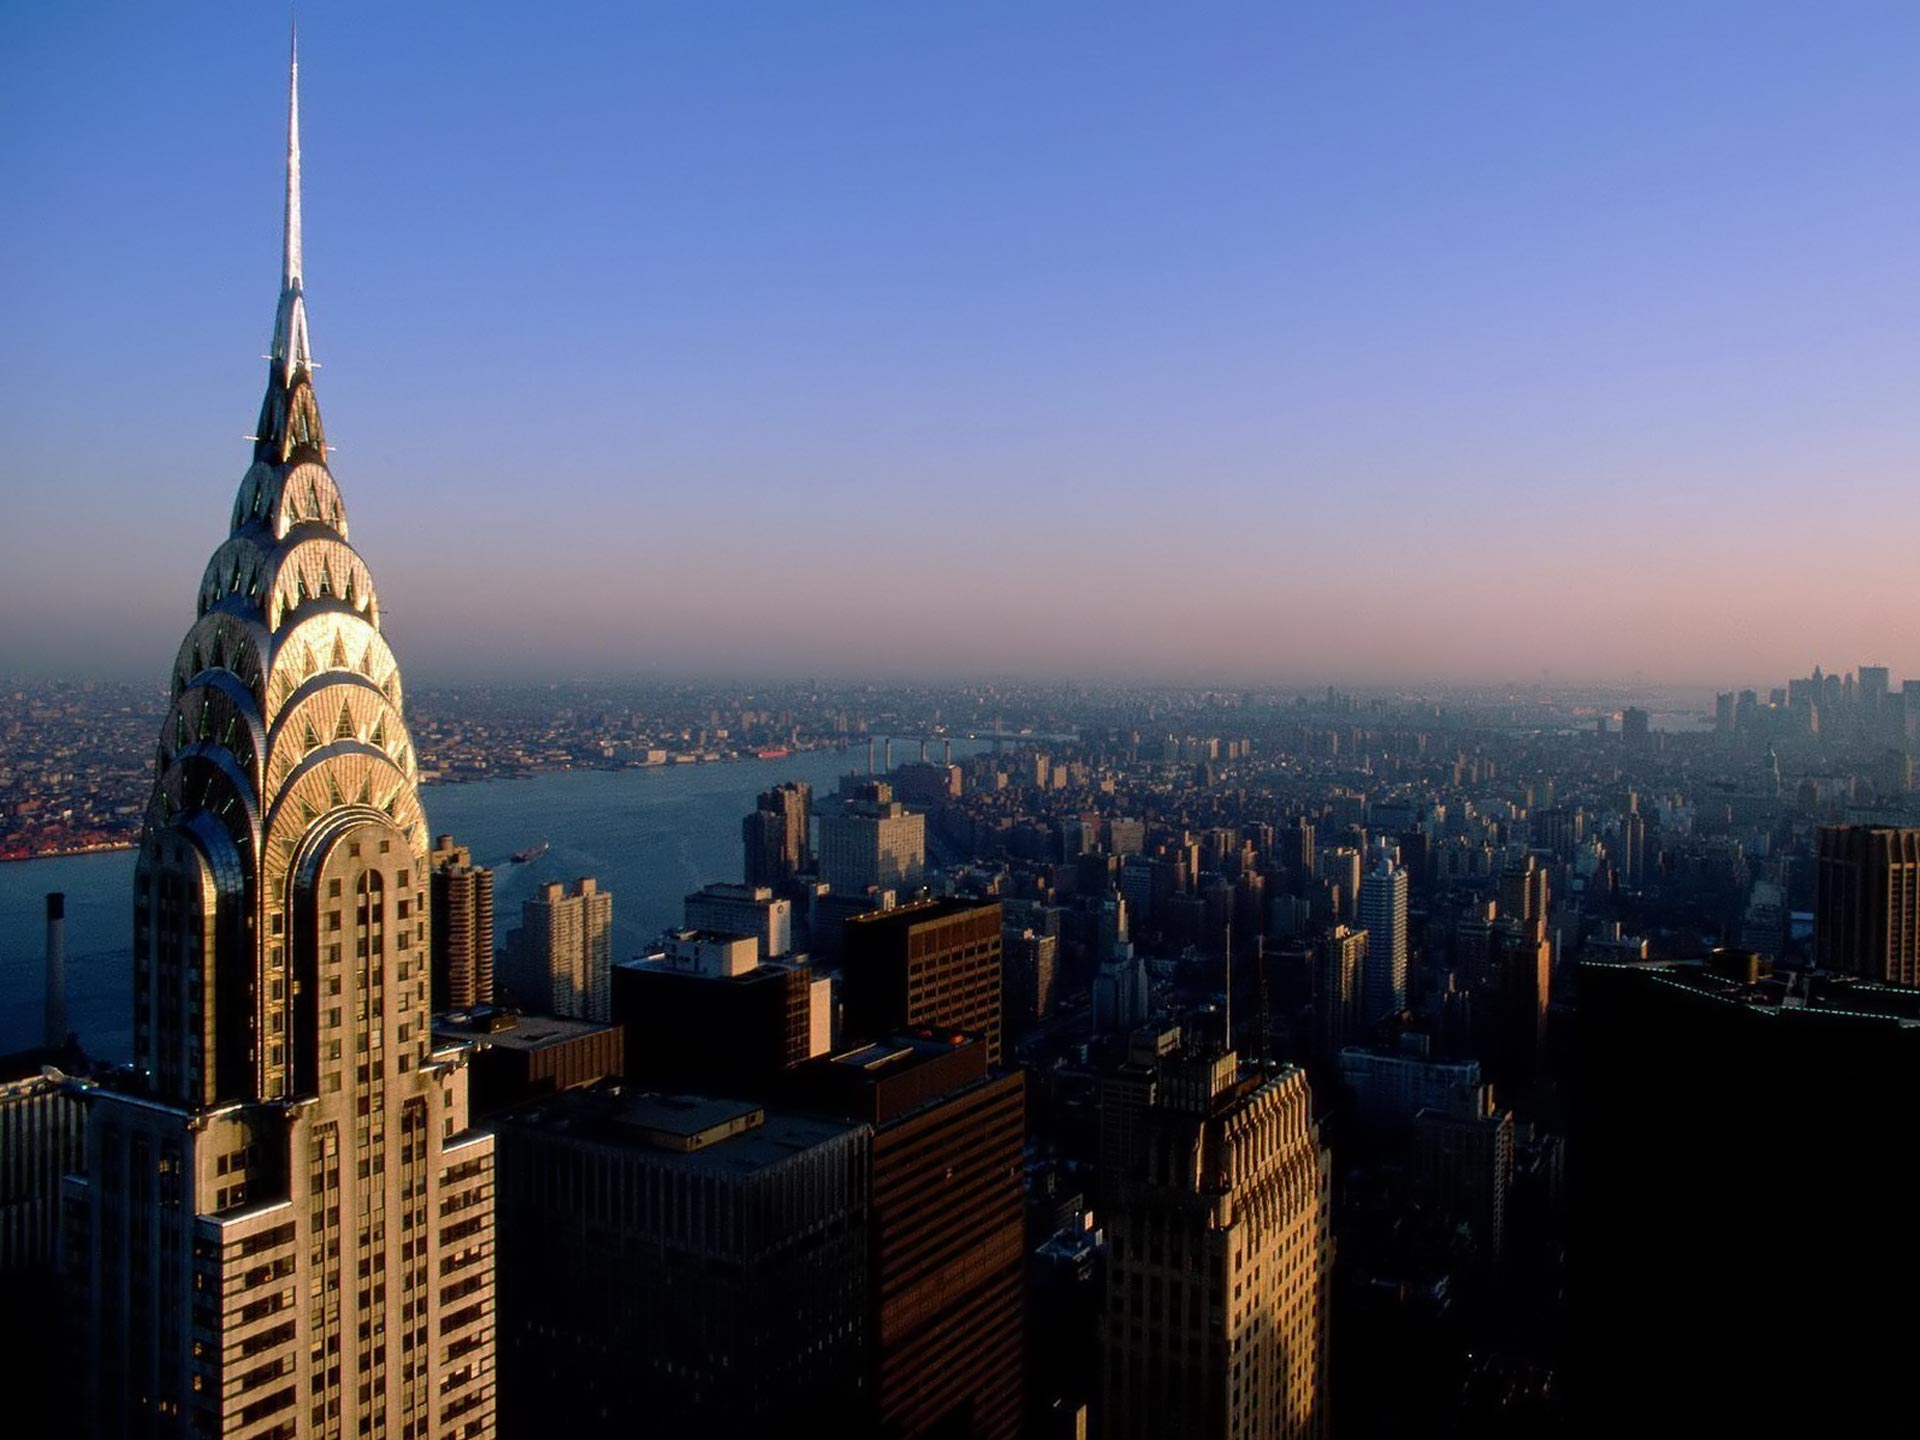 The best New York wallpaper ever?? | Cities wallpapers